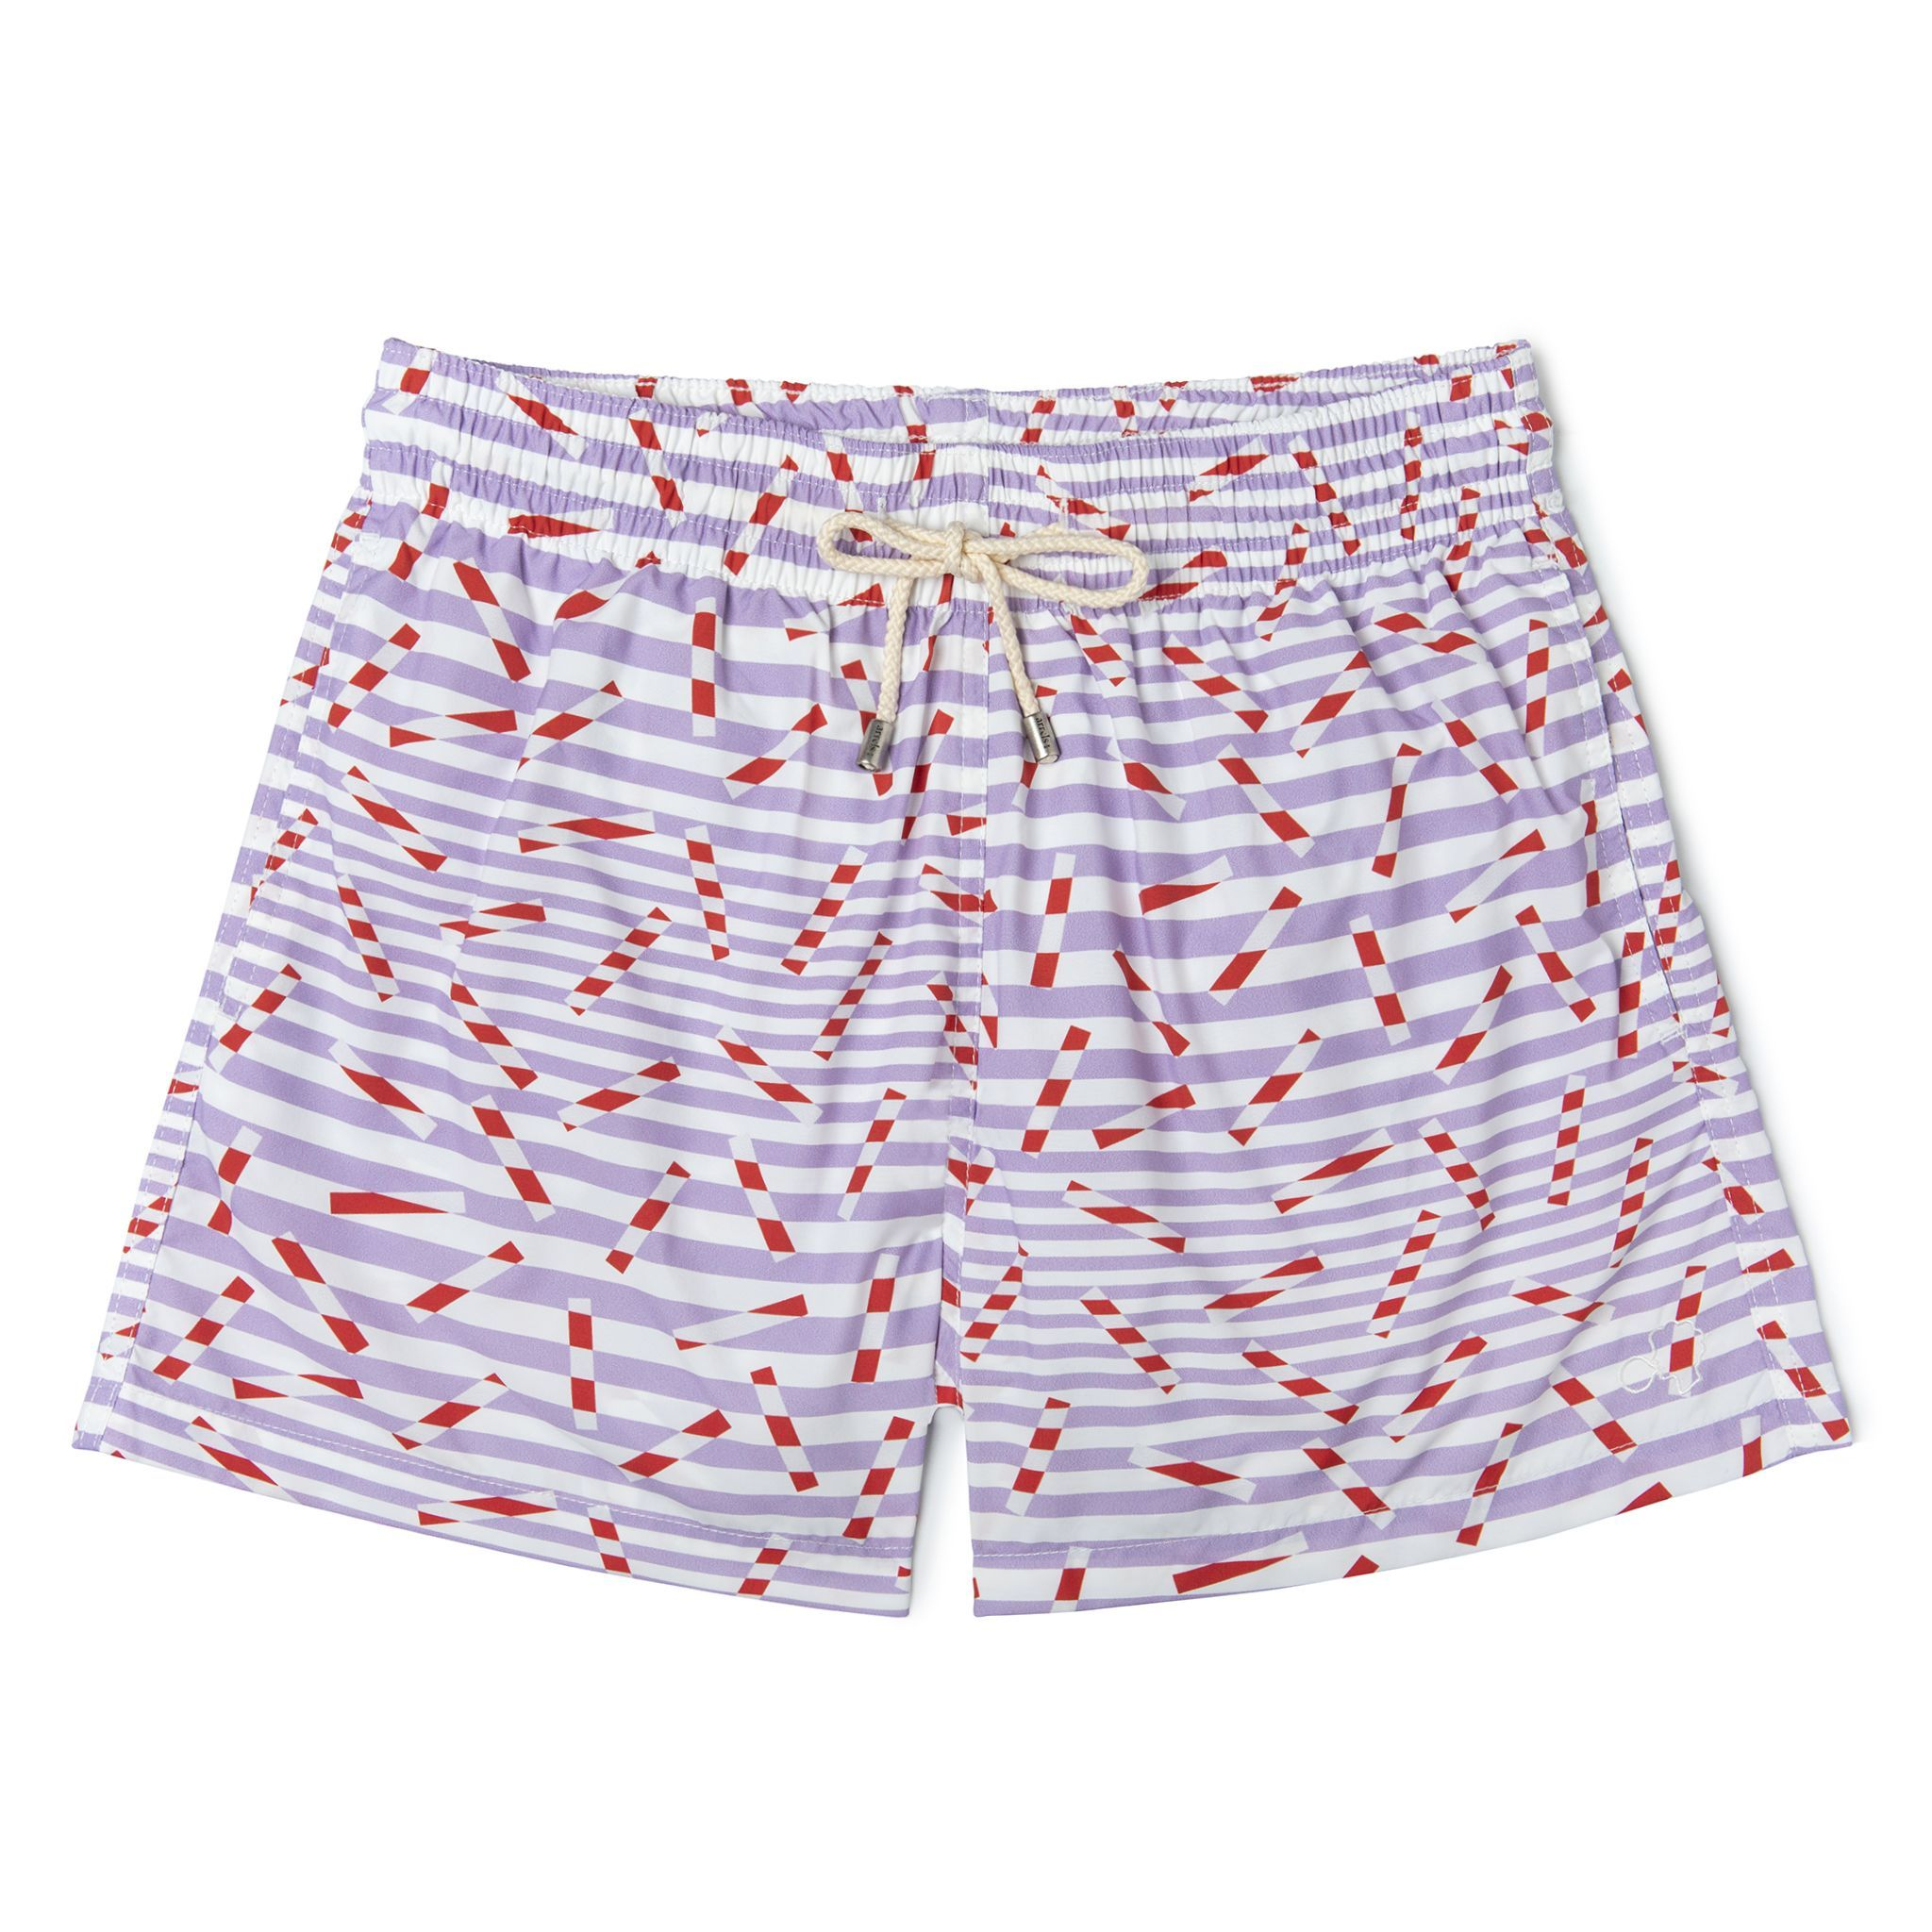 Short-Length Swim Shorts Mauvesticks